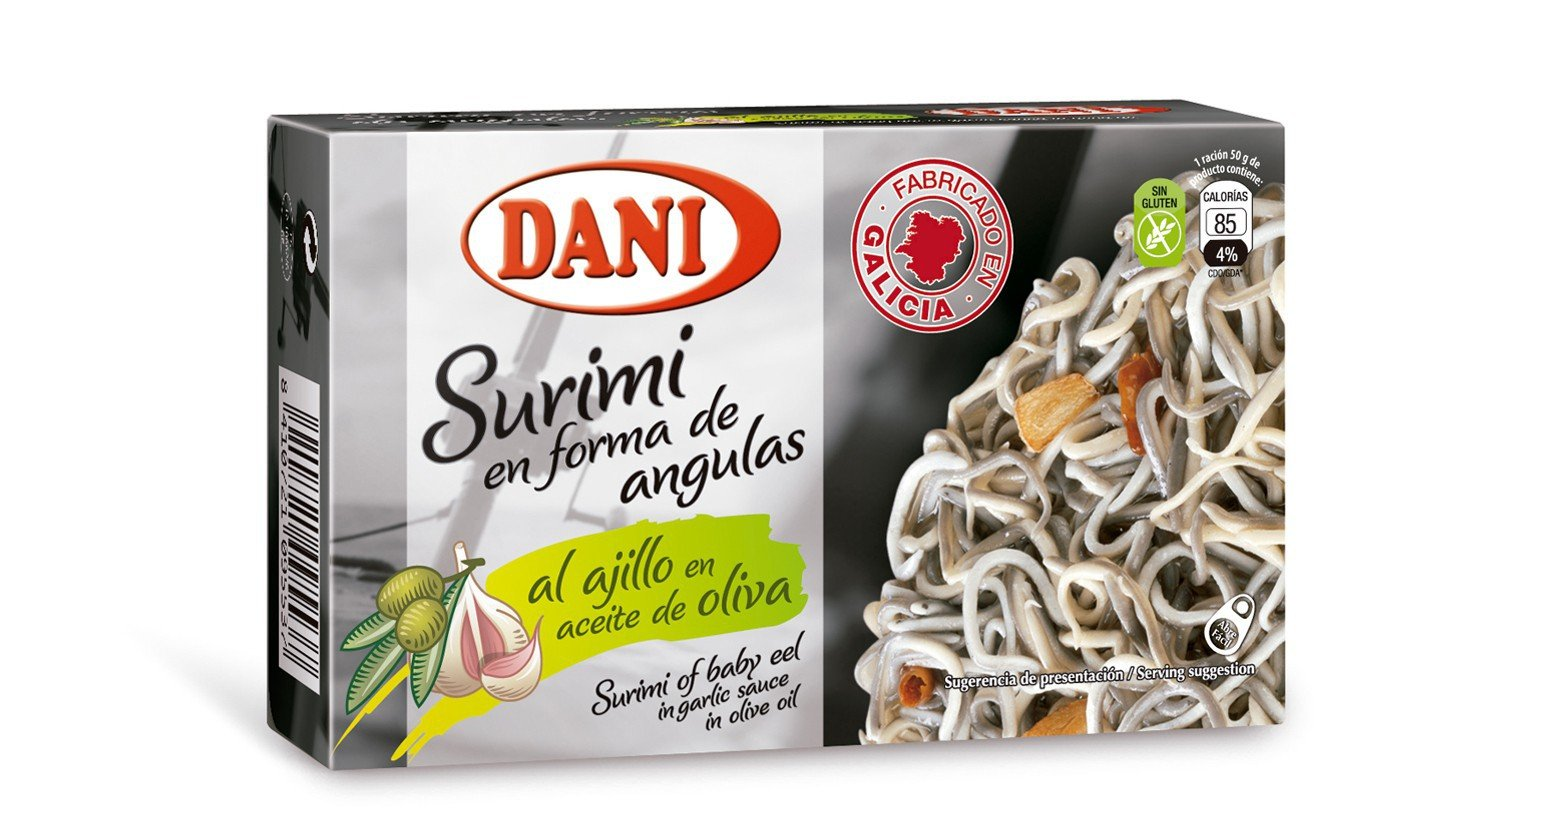 3x Pack Surimi of Baby Eels in Garlic and Olive Sauce Gluten Free (Angulas) by Dani